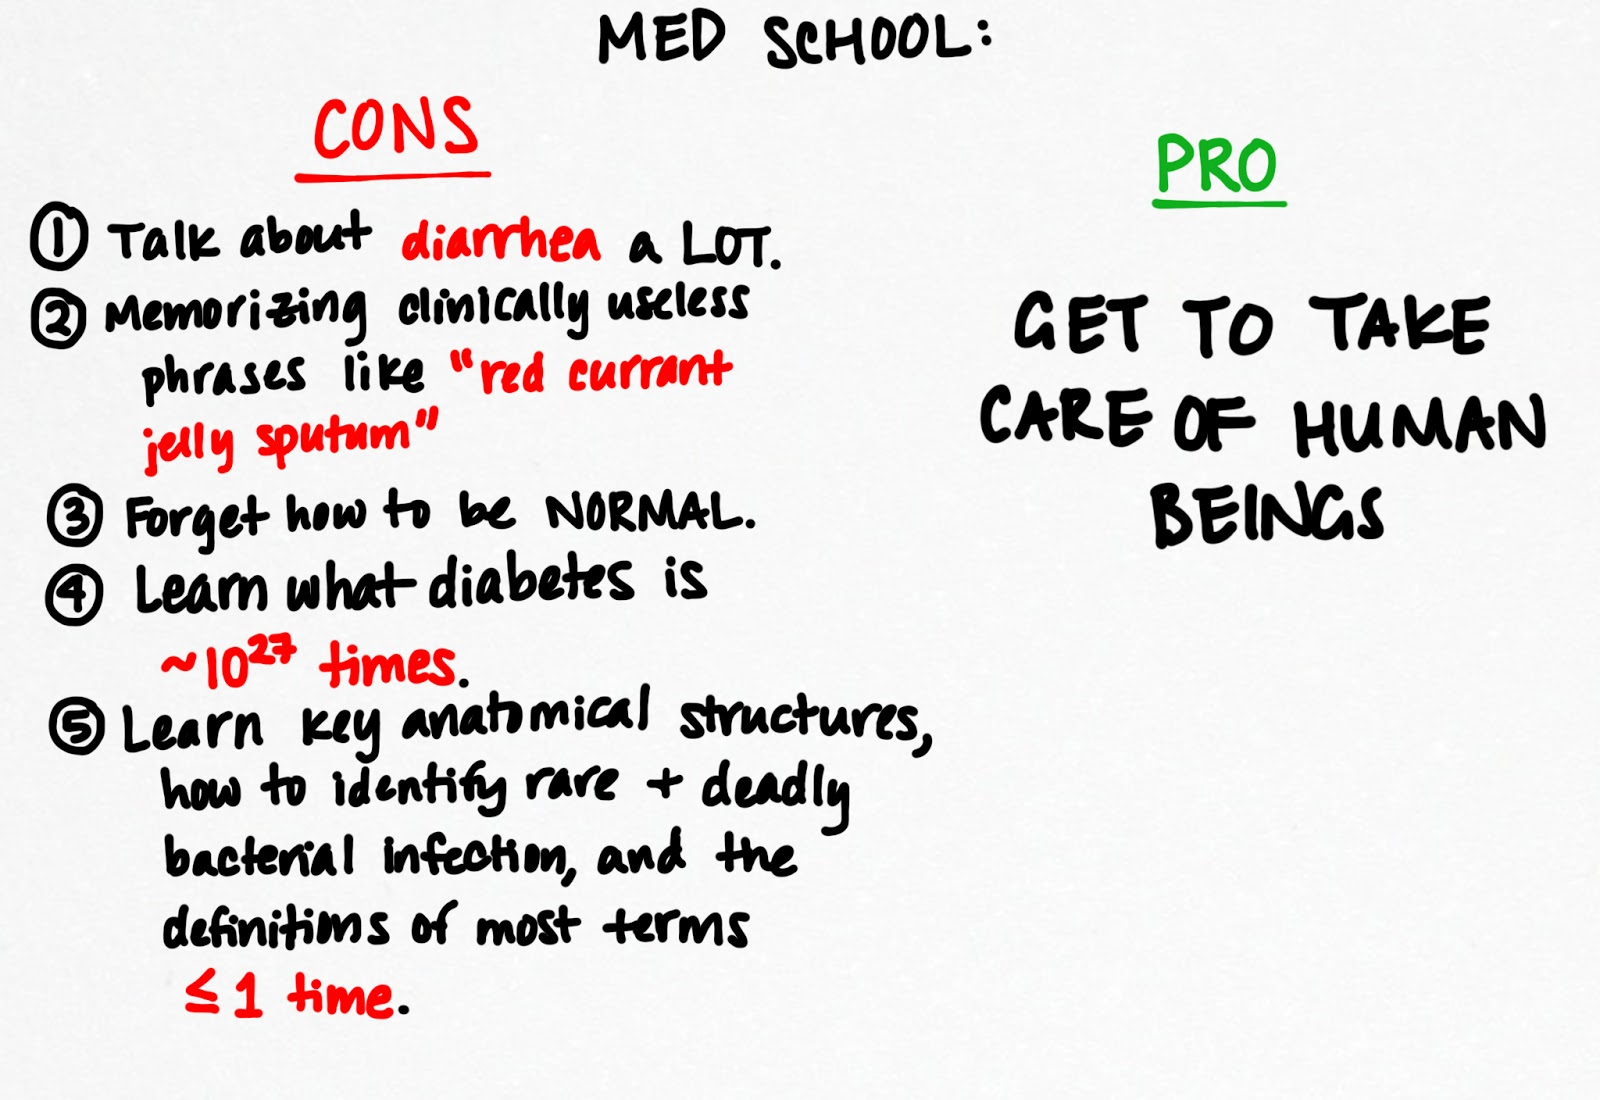 The Health Scout: Pros & Cons of Med School